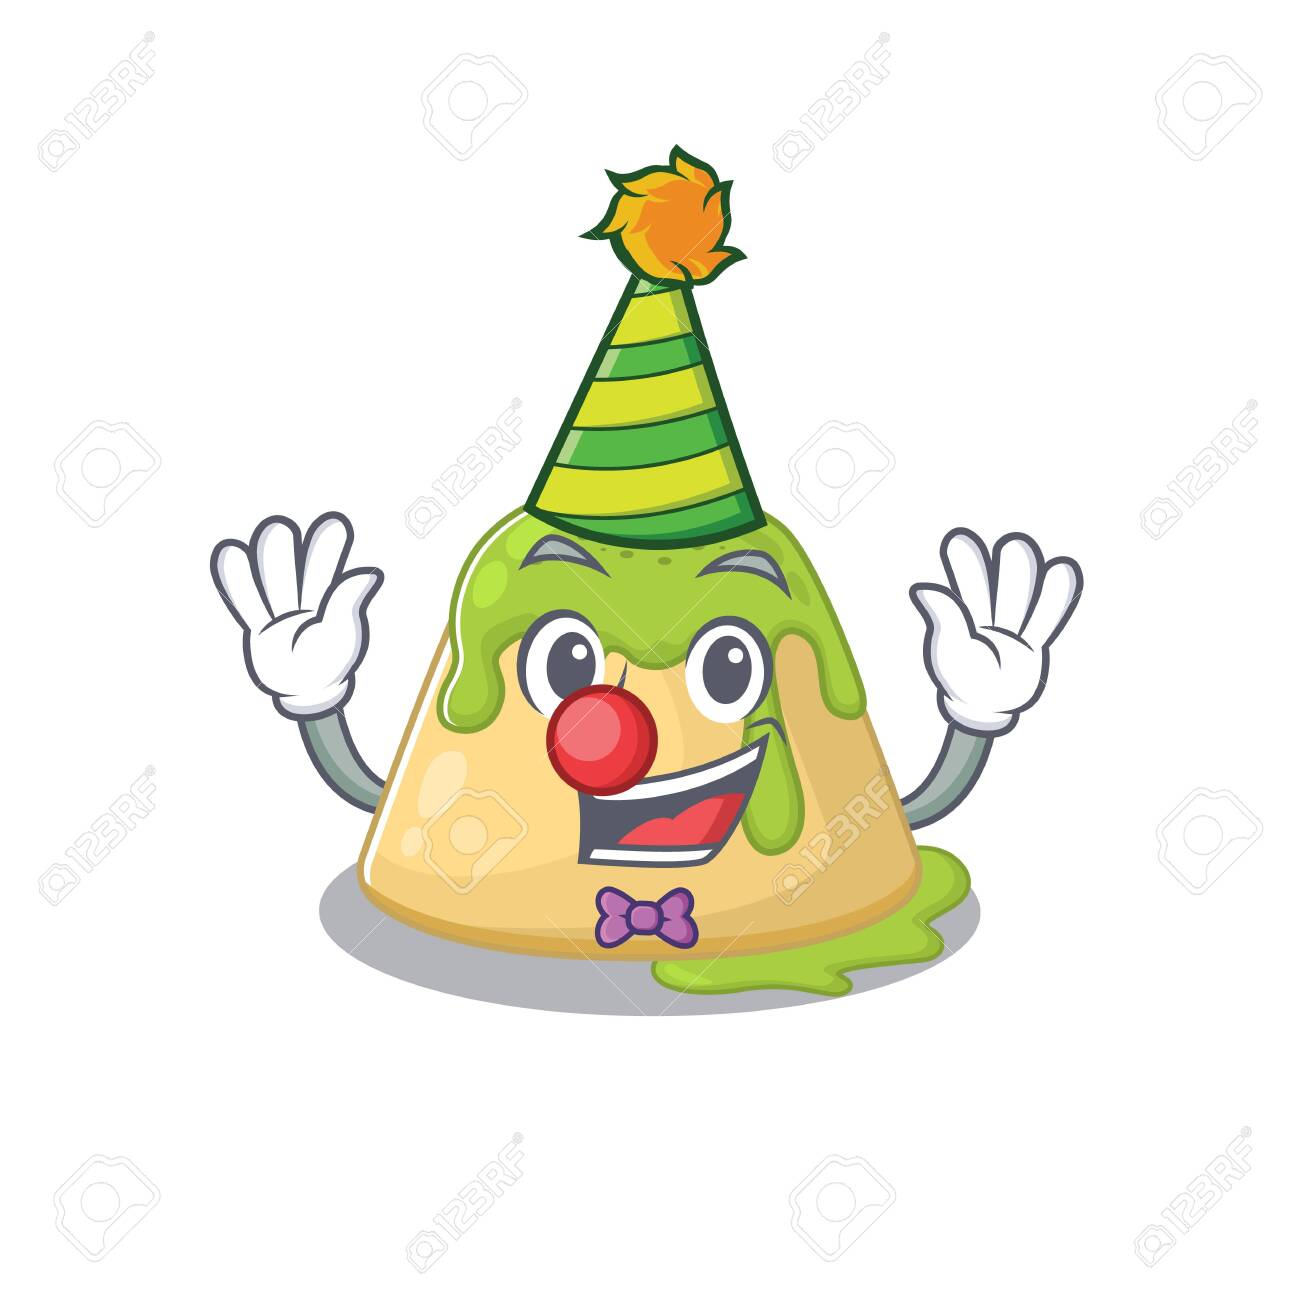 Cute and Funny Clown pudding green tea cartoon character mascot style. Vector illustration - 142055327